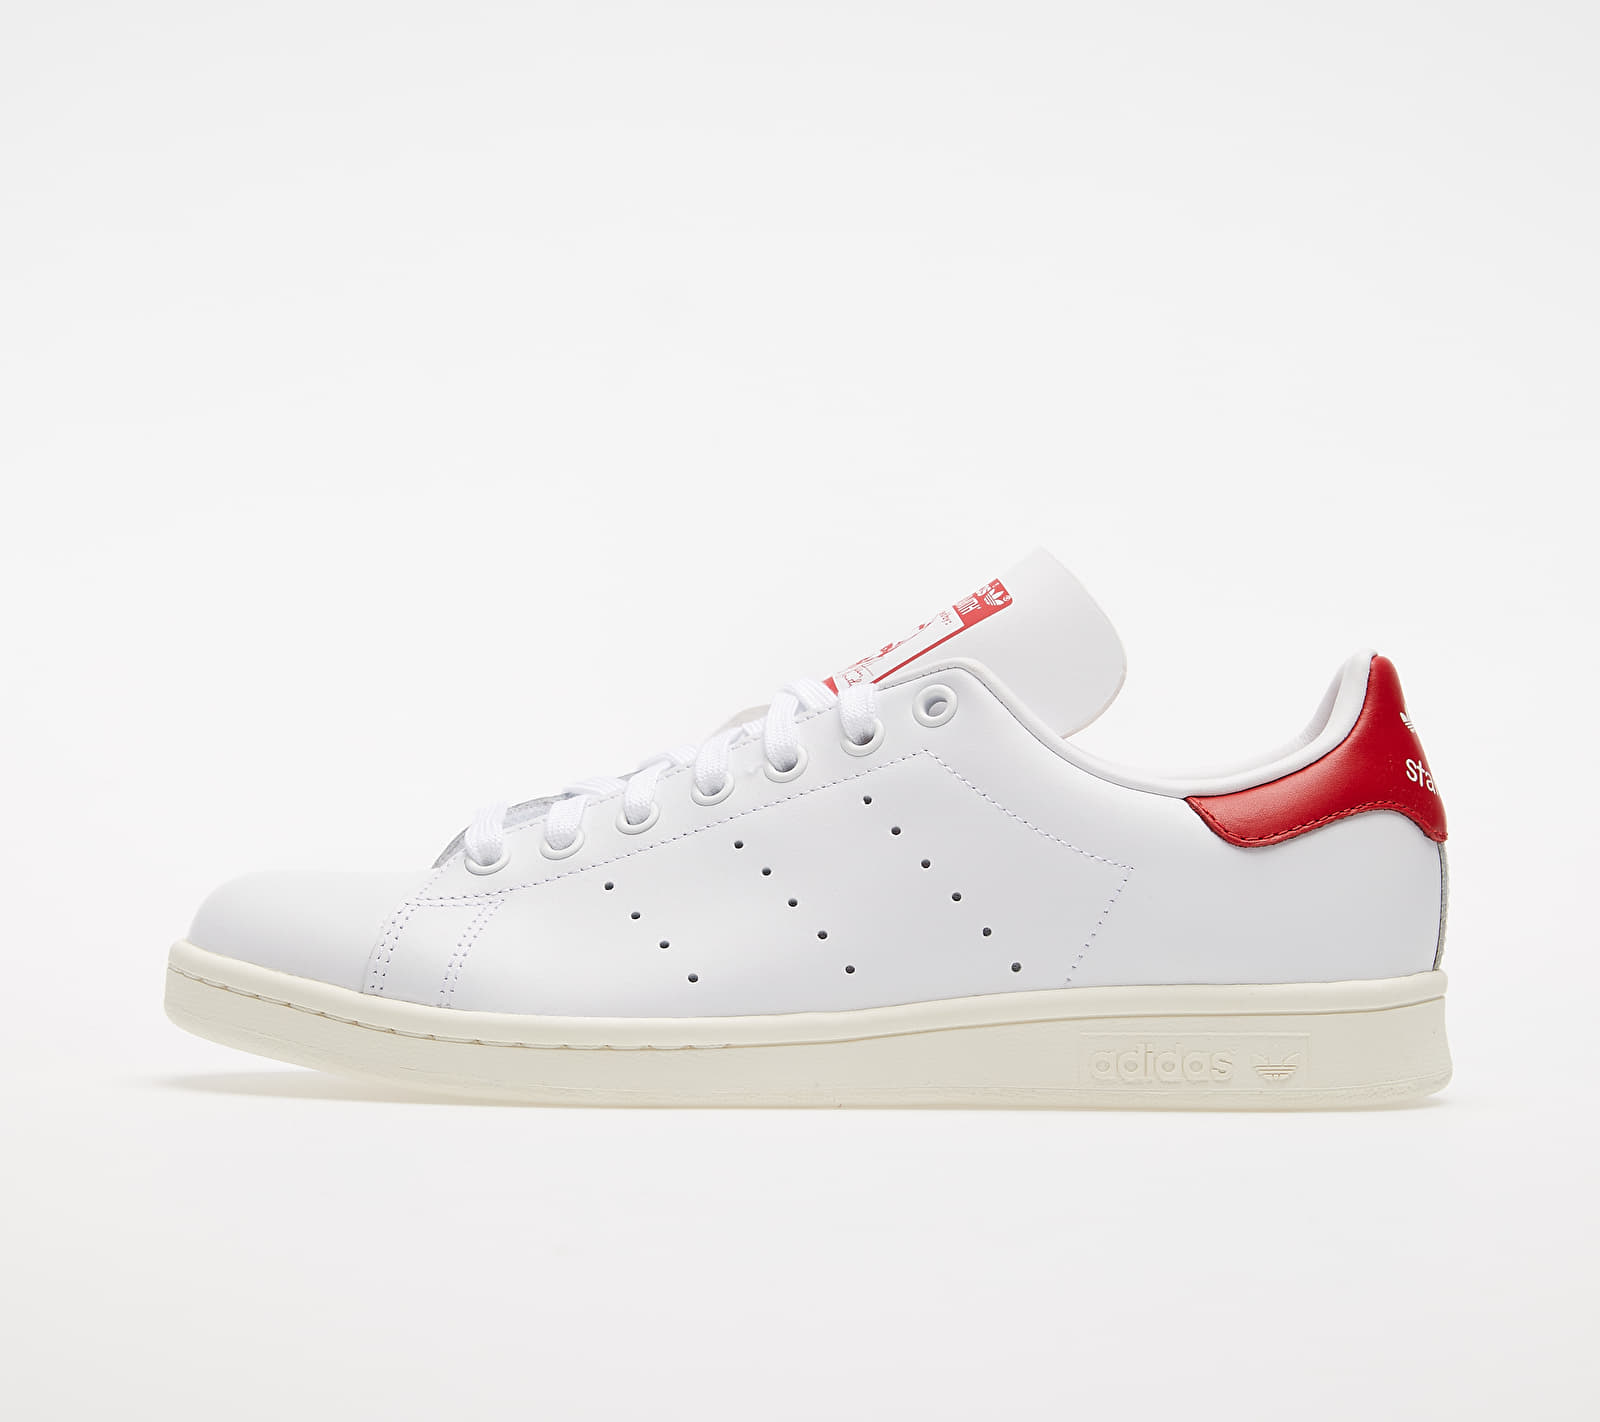 adidas Stan Smith Ftw White/ Off White/ Scarlet EUR 44